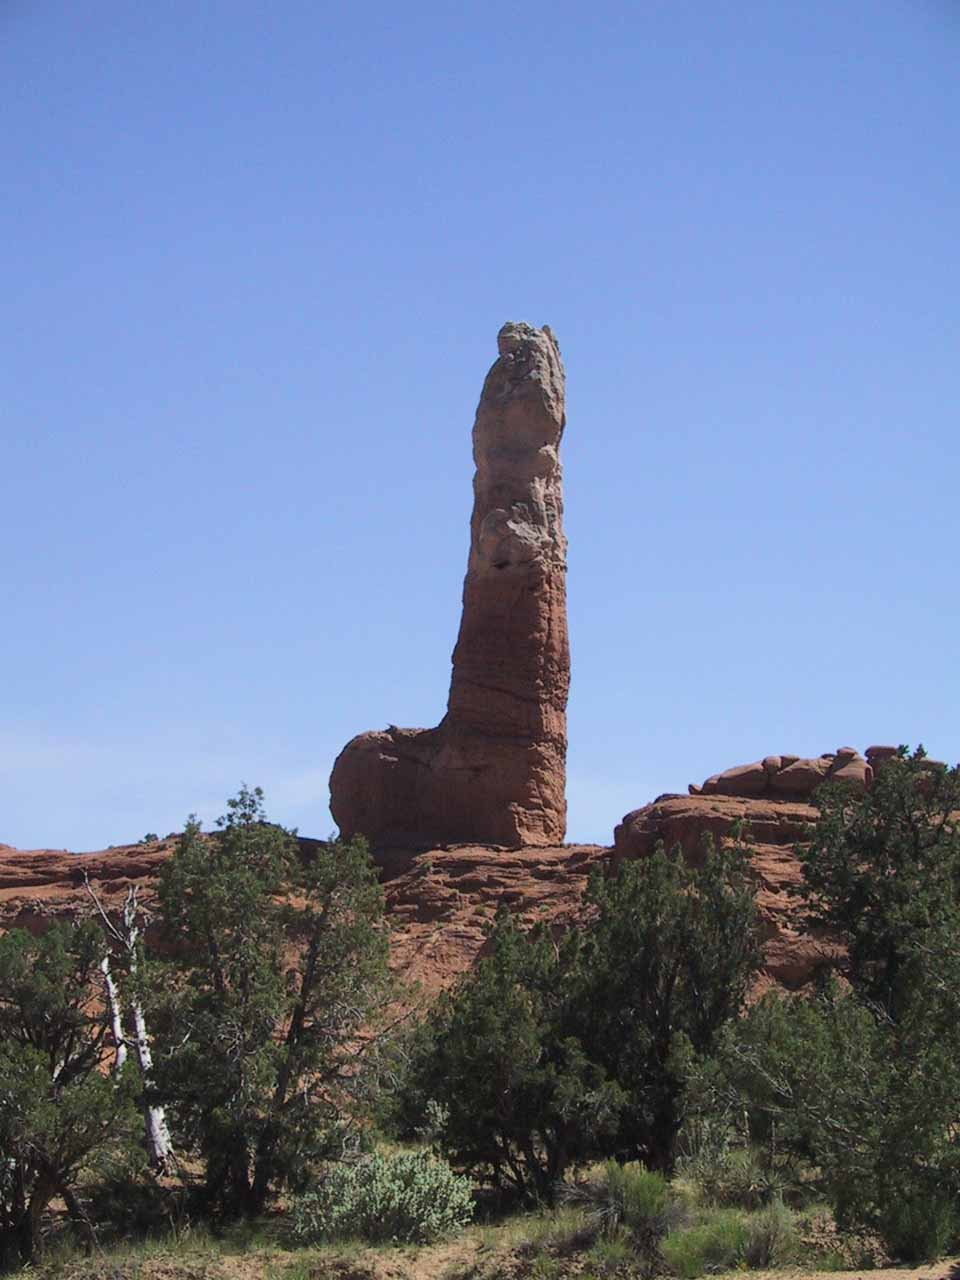 A phallic formation at Kodachrome Basin State Park